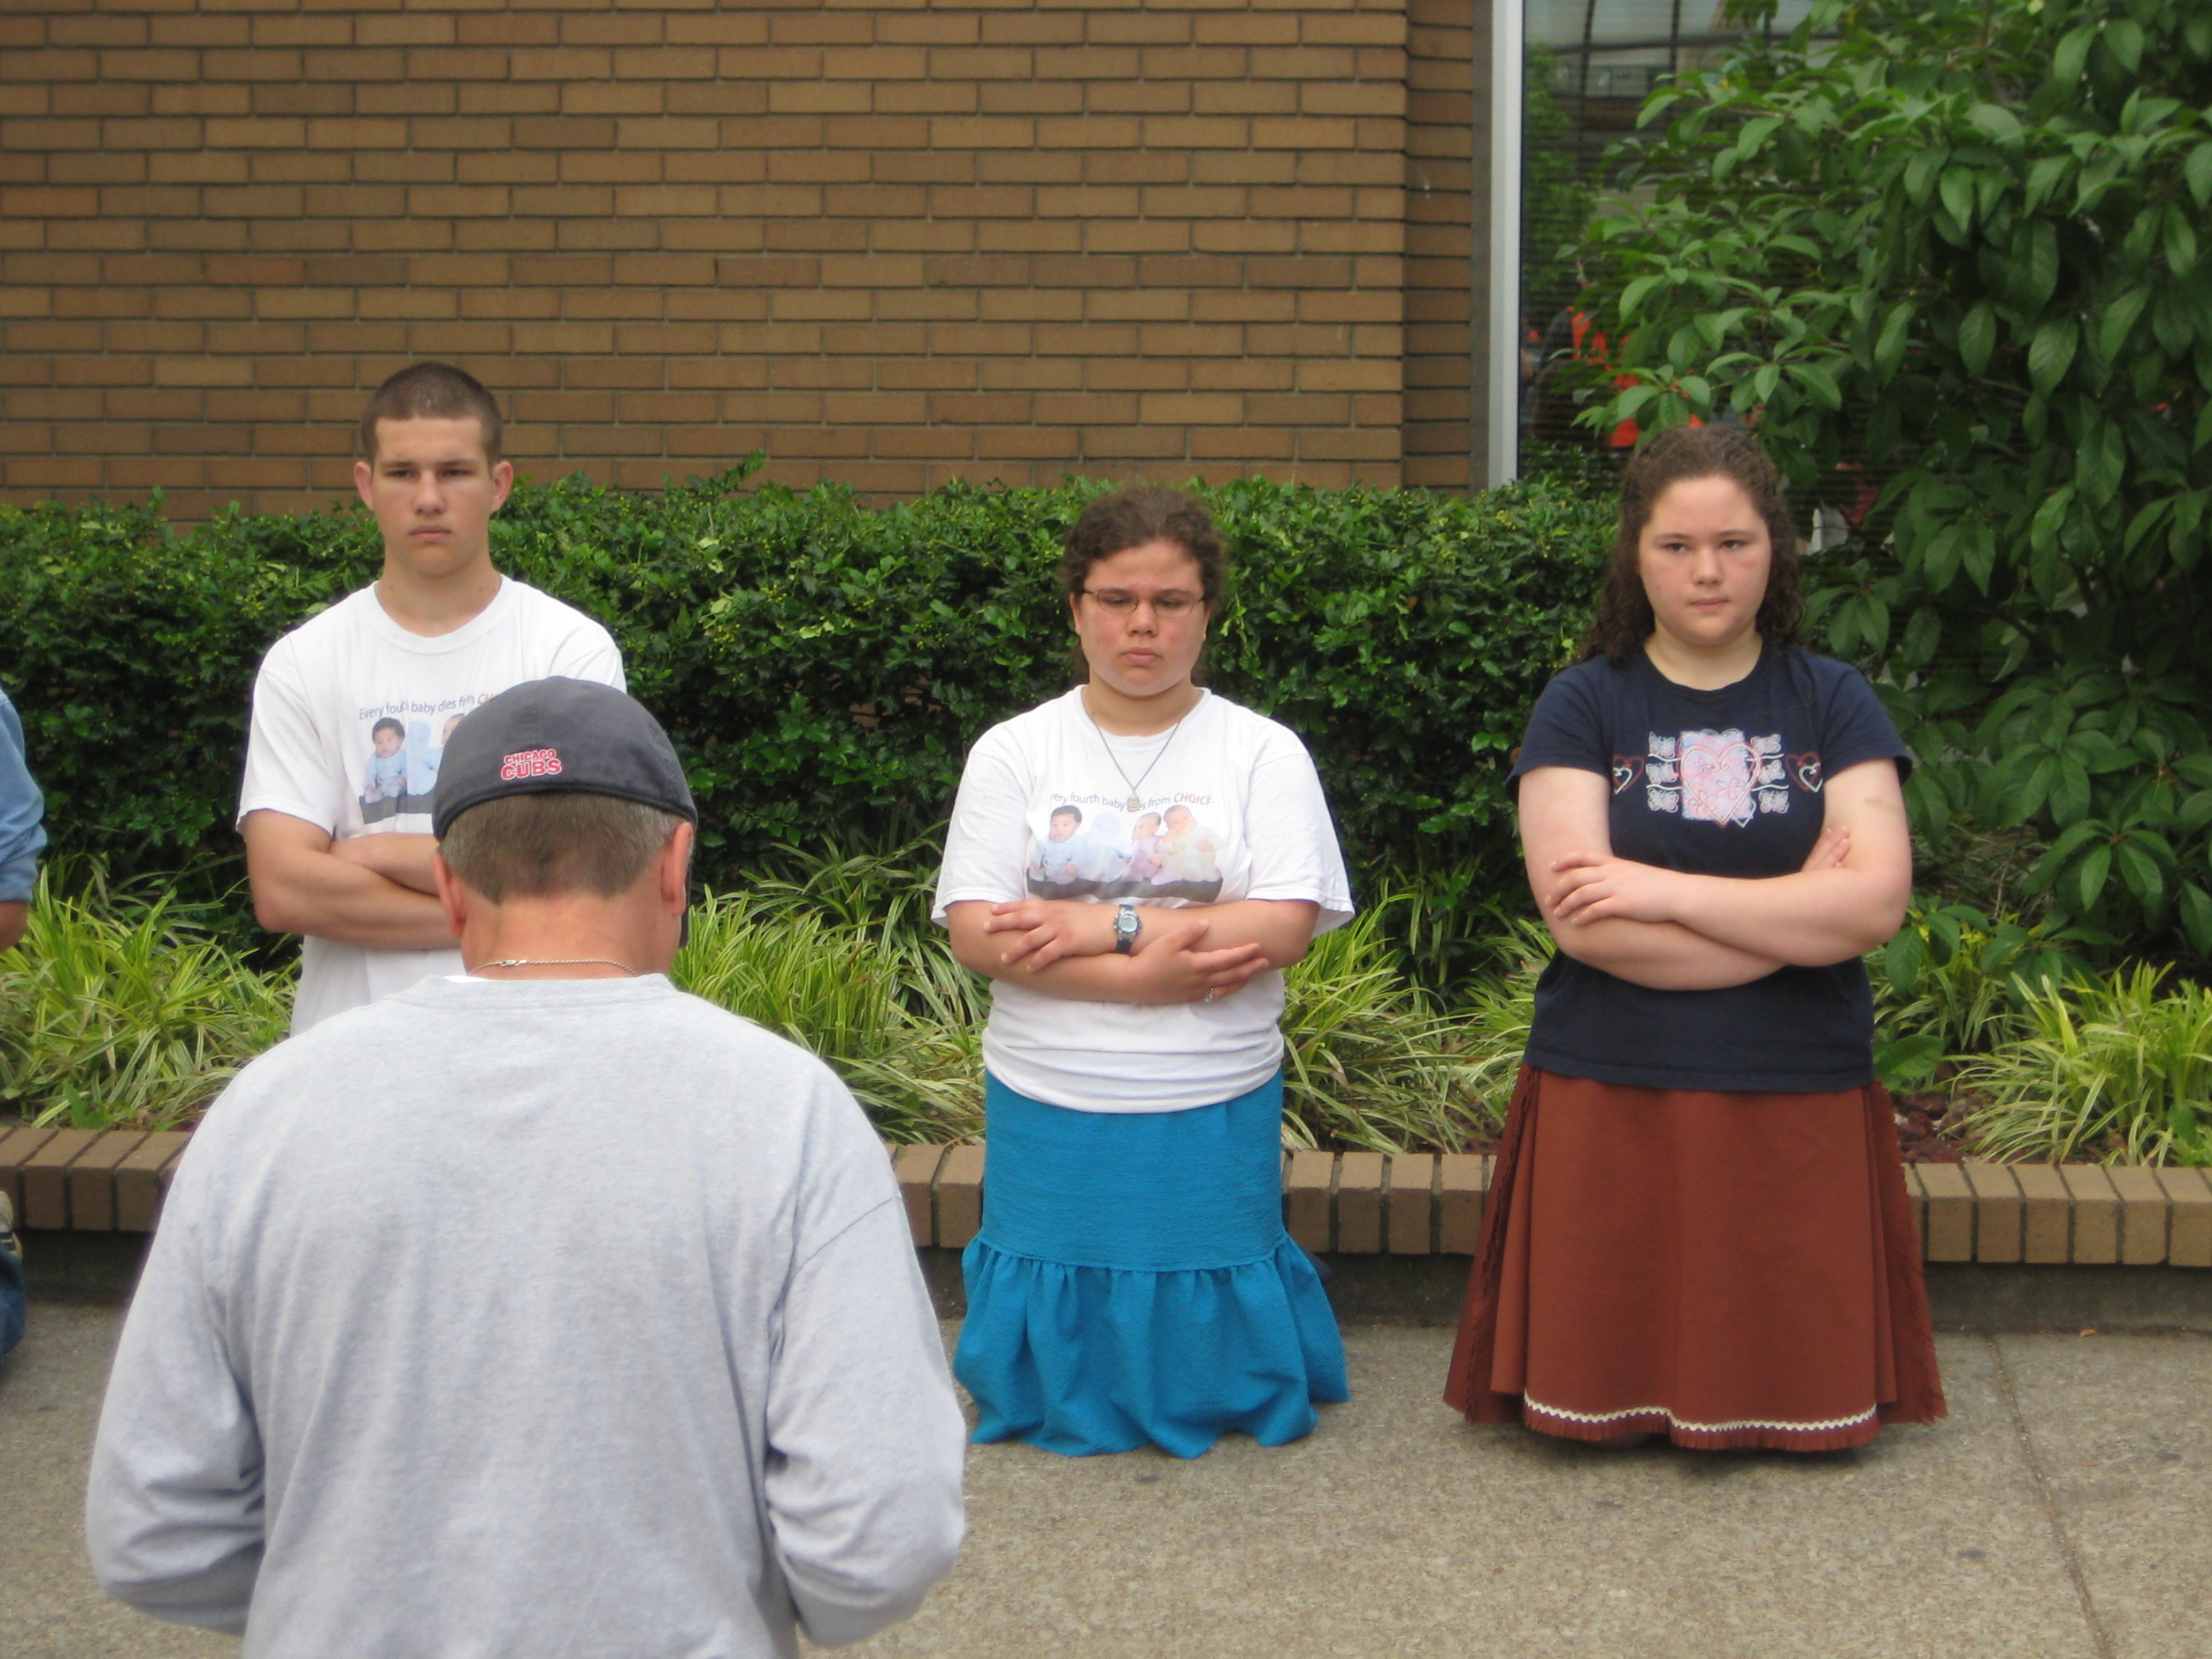 This group does NOT seem stoked to be praying for babies.